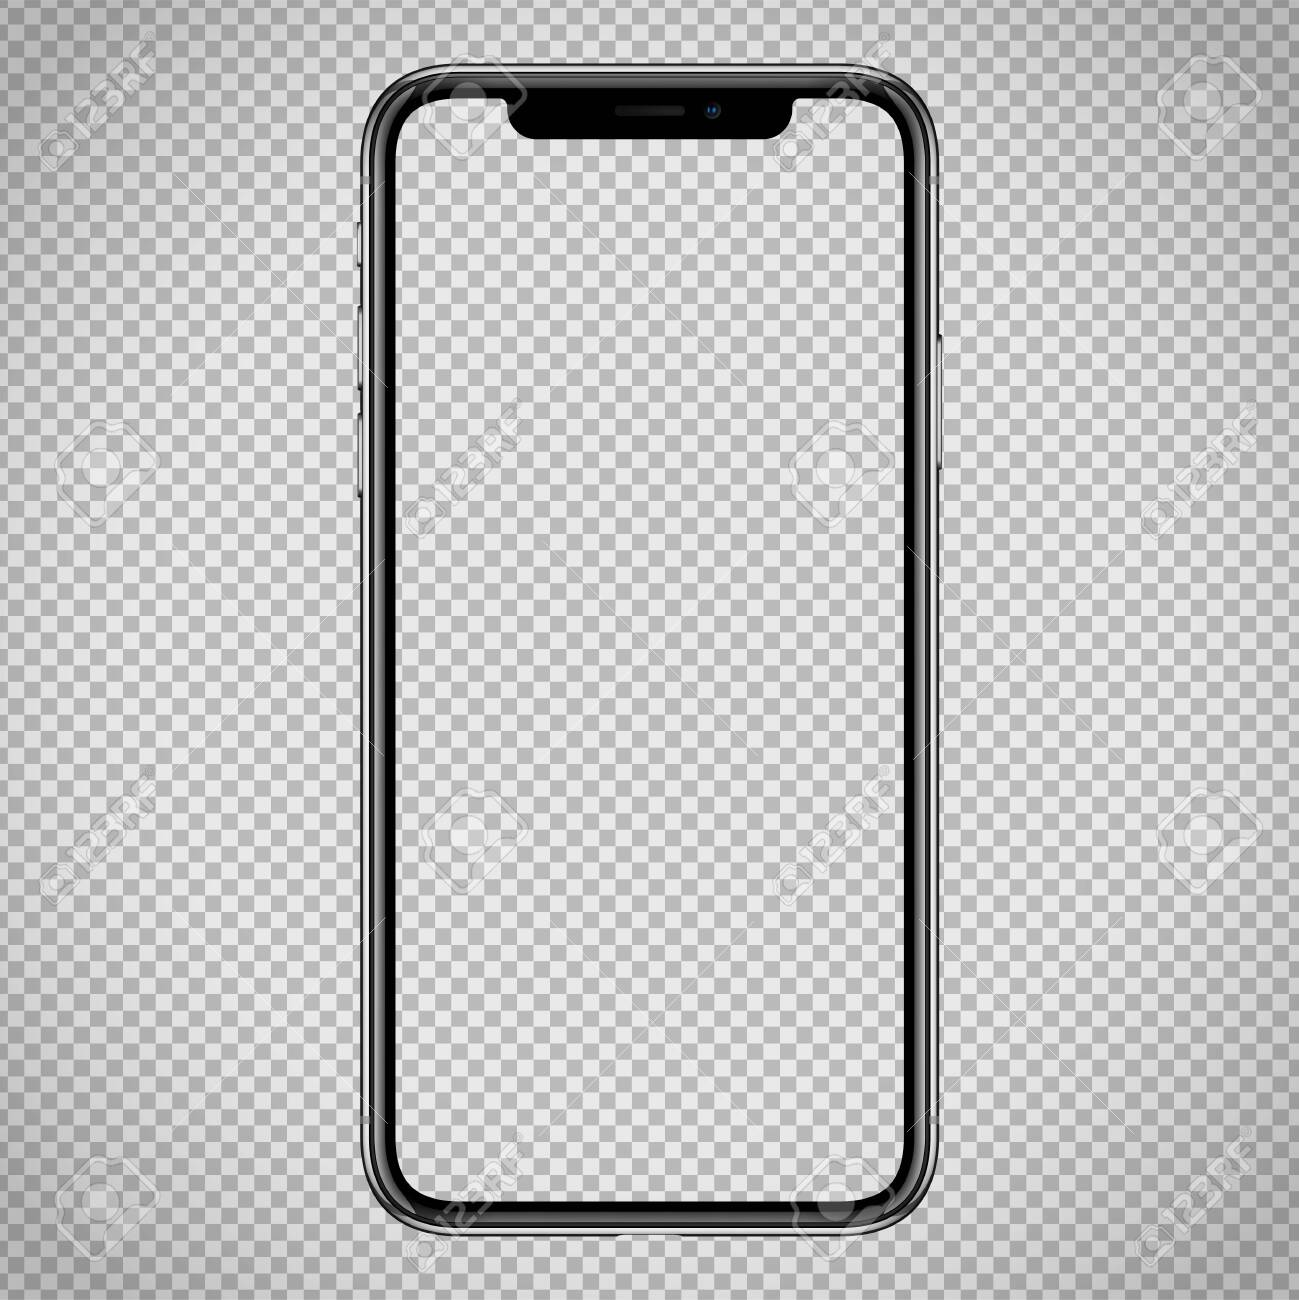 new vector Smartphone template for web interface, app demo mockup. No frames and blank screen on transparent backround - 122556708